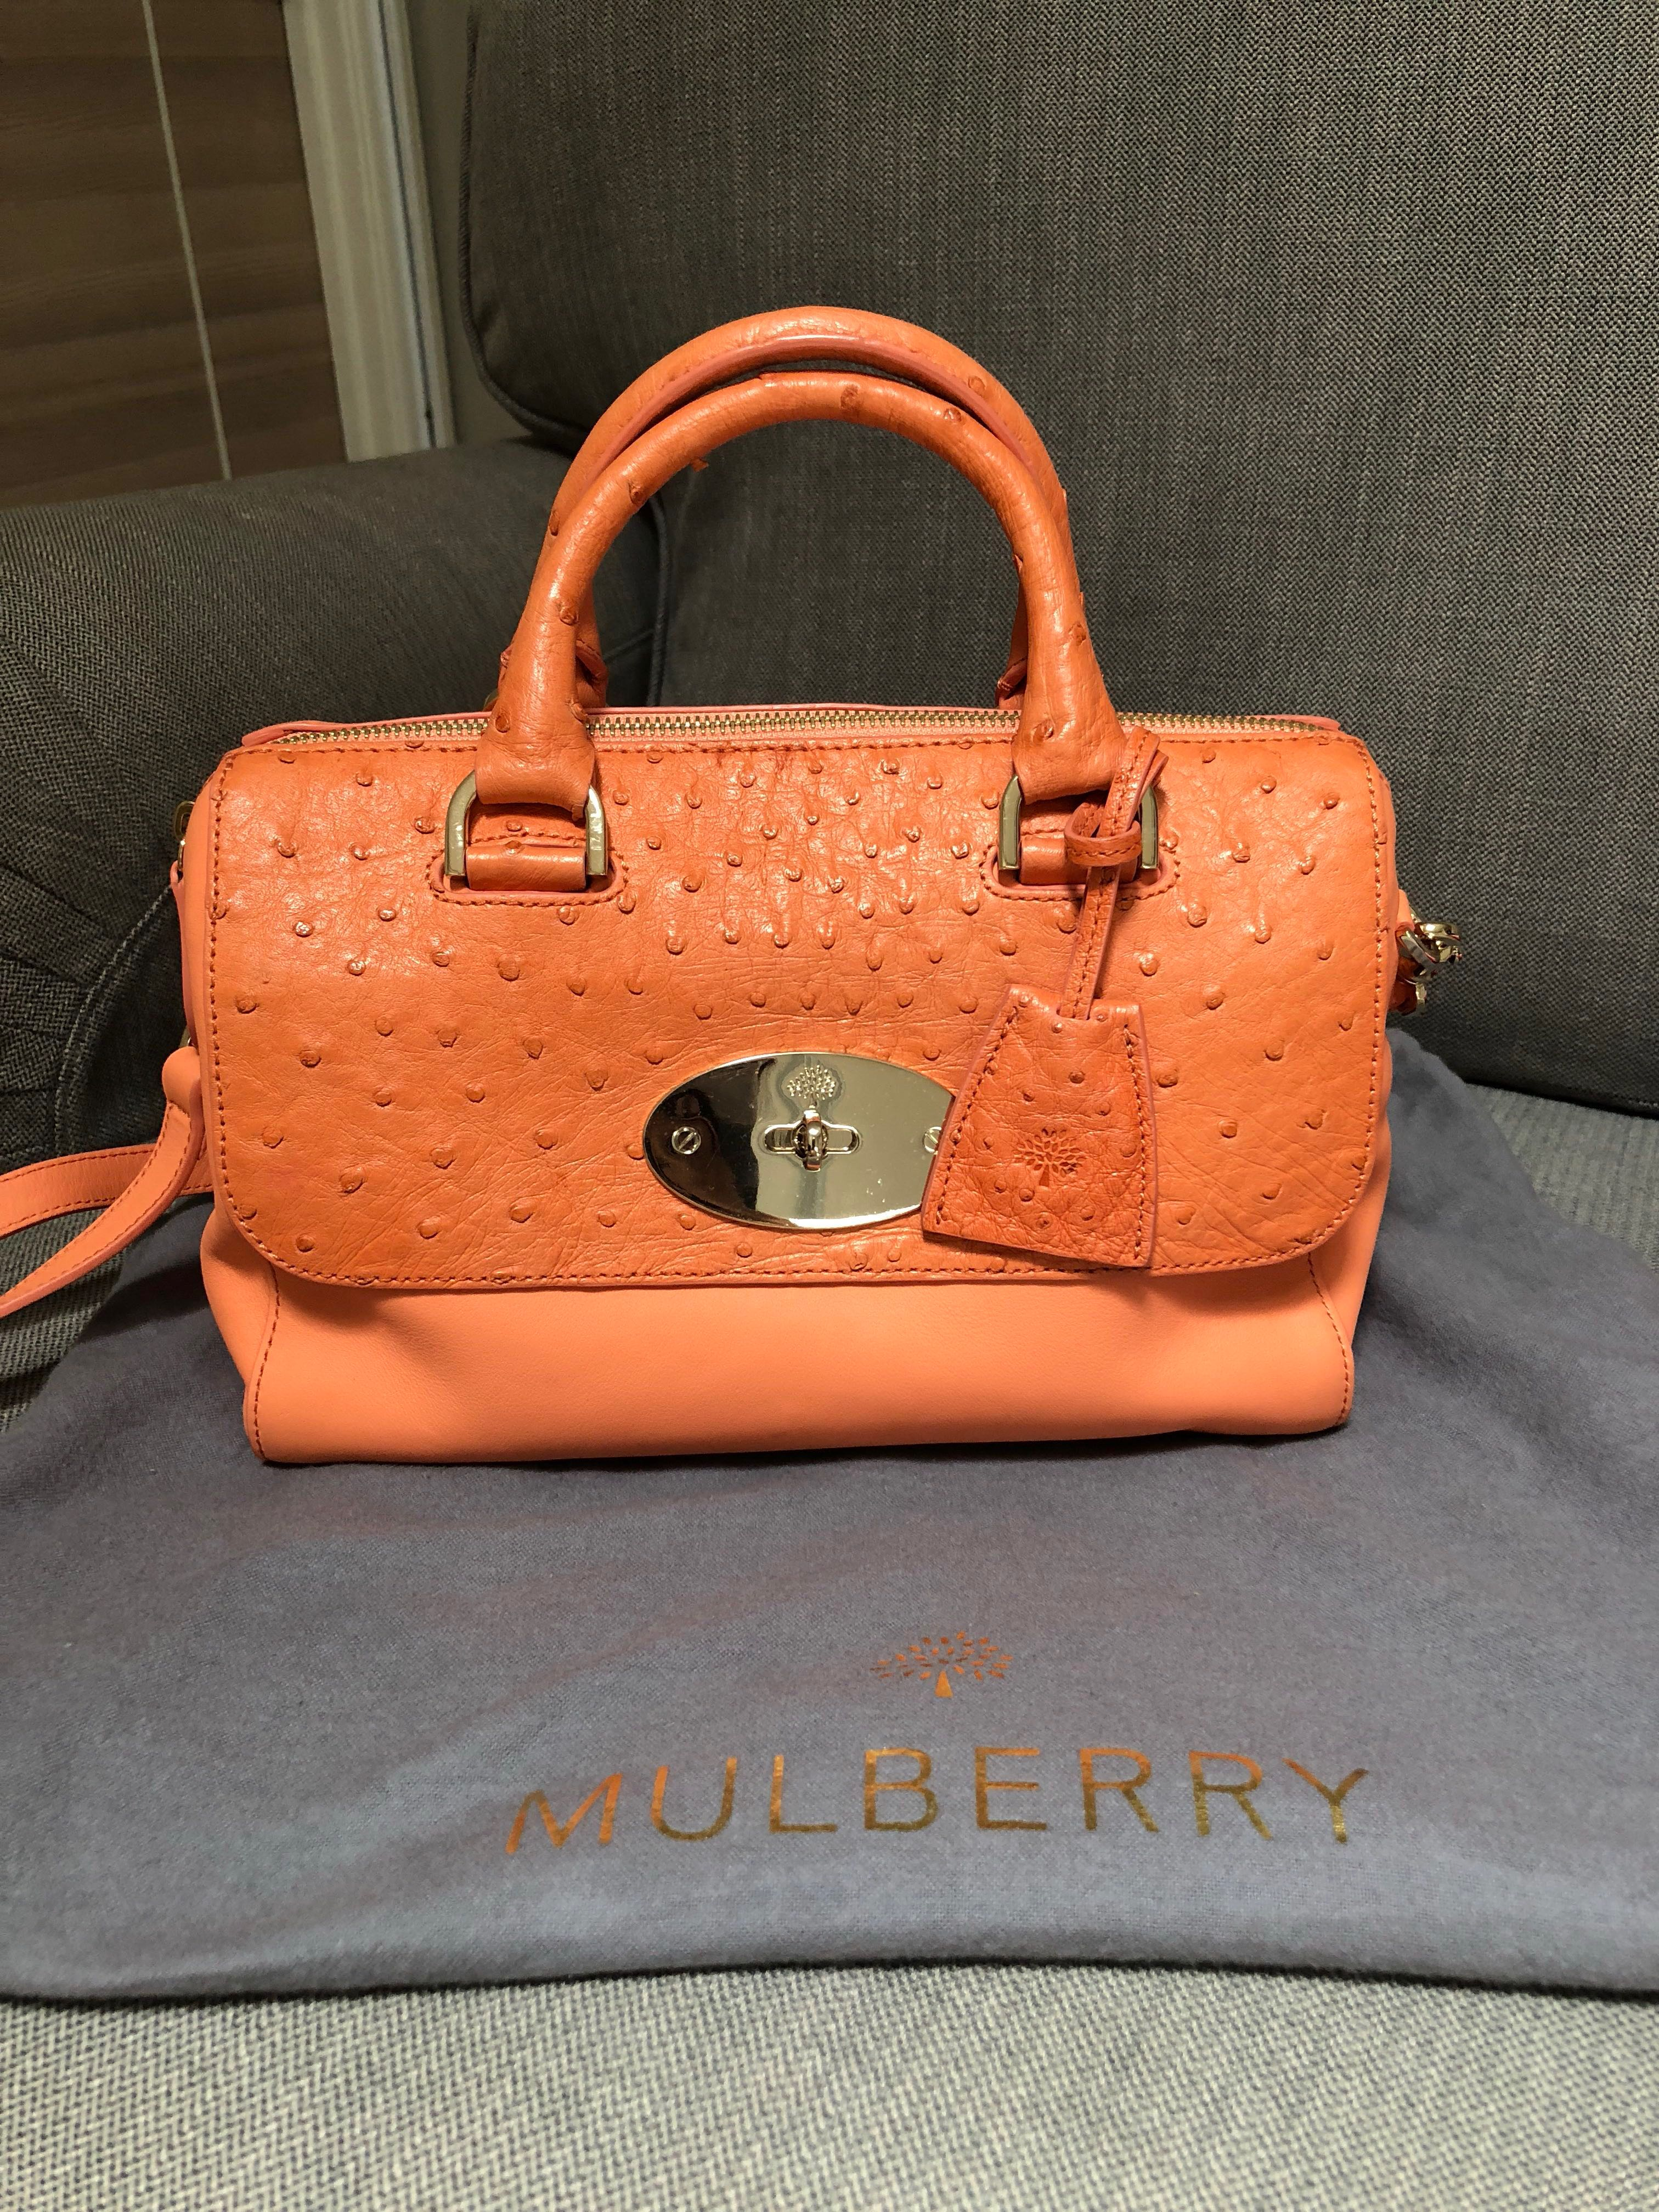 4f1bf21e33a Mulberry ostrich small del rey, Women's Fashion, Bags & Wallets on Carousell